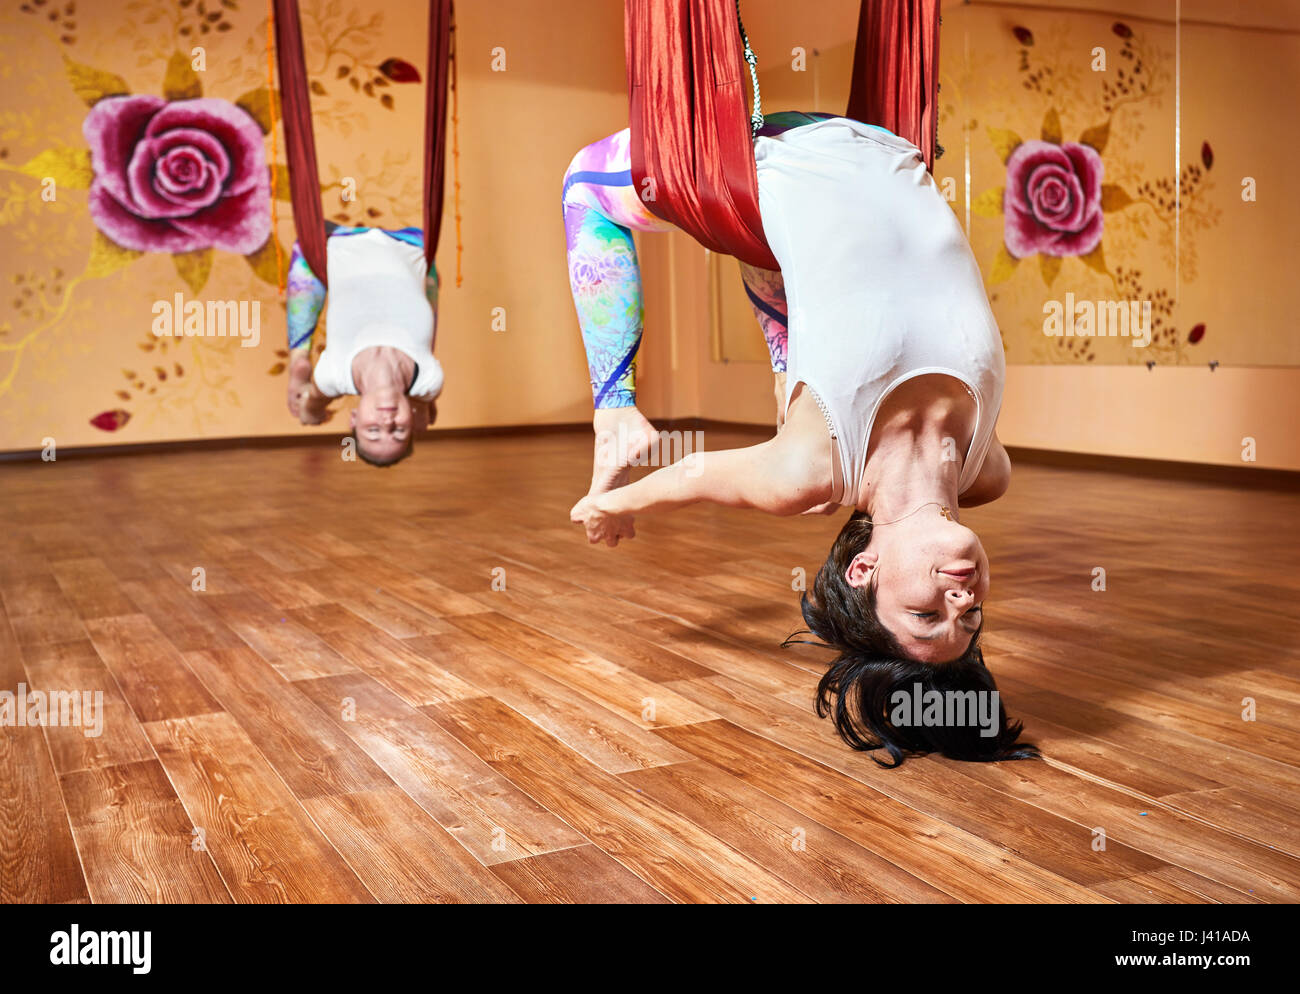 Two Young woman doing antigravity yoga in hammock at wellness studio with rose on the wall - Stock Image